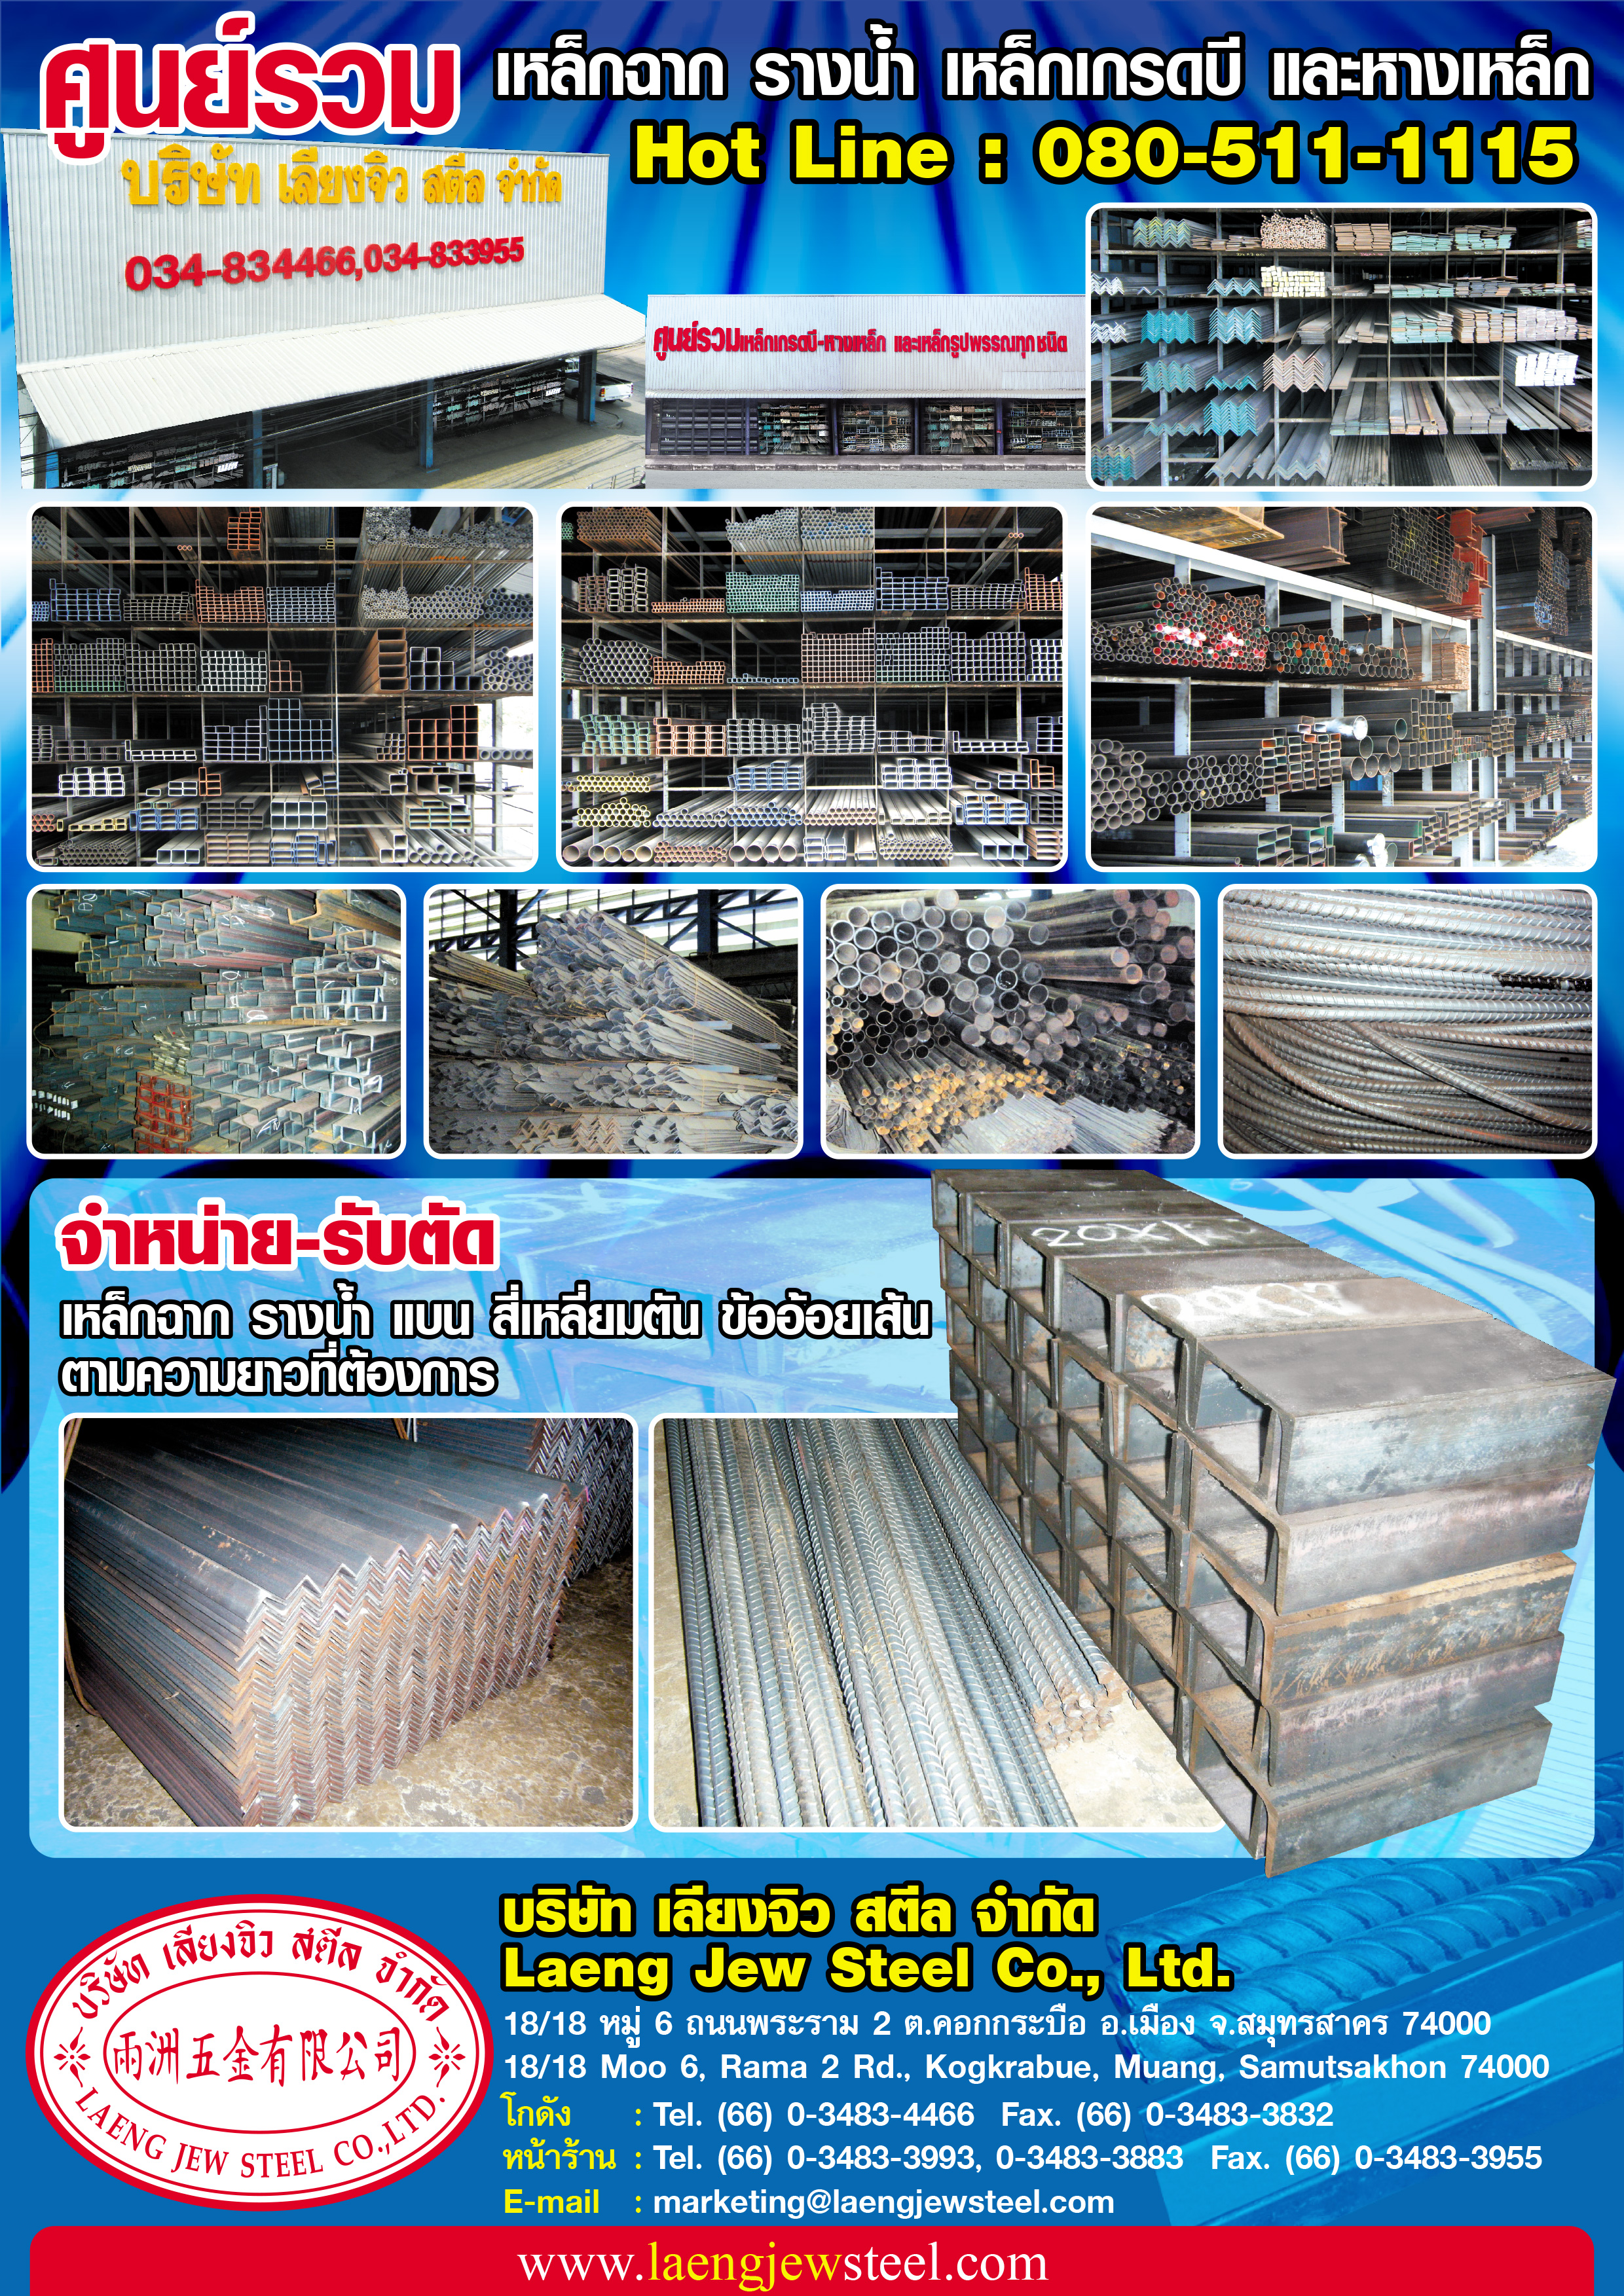 Laeng Jew Steel Co., Ltd.